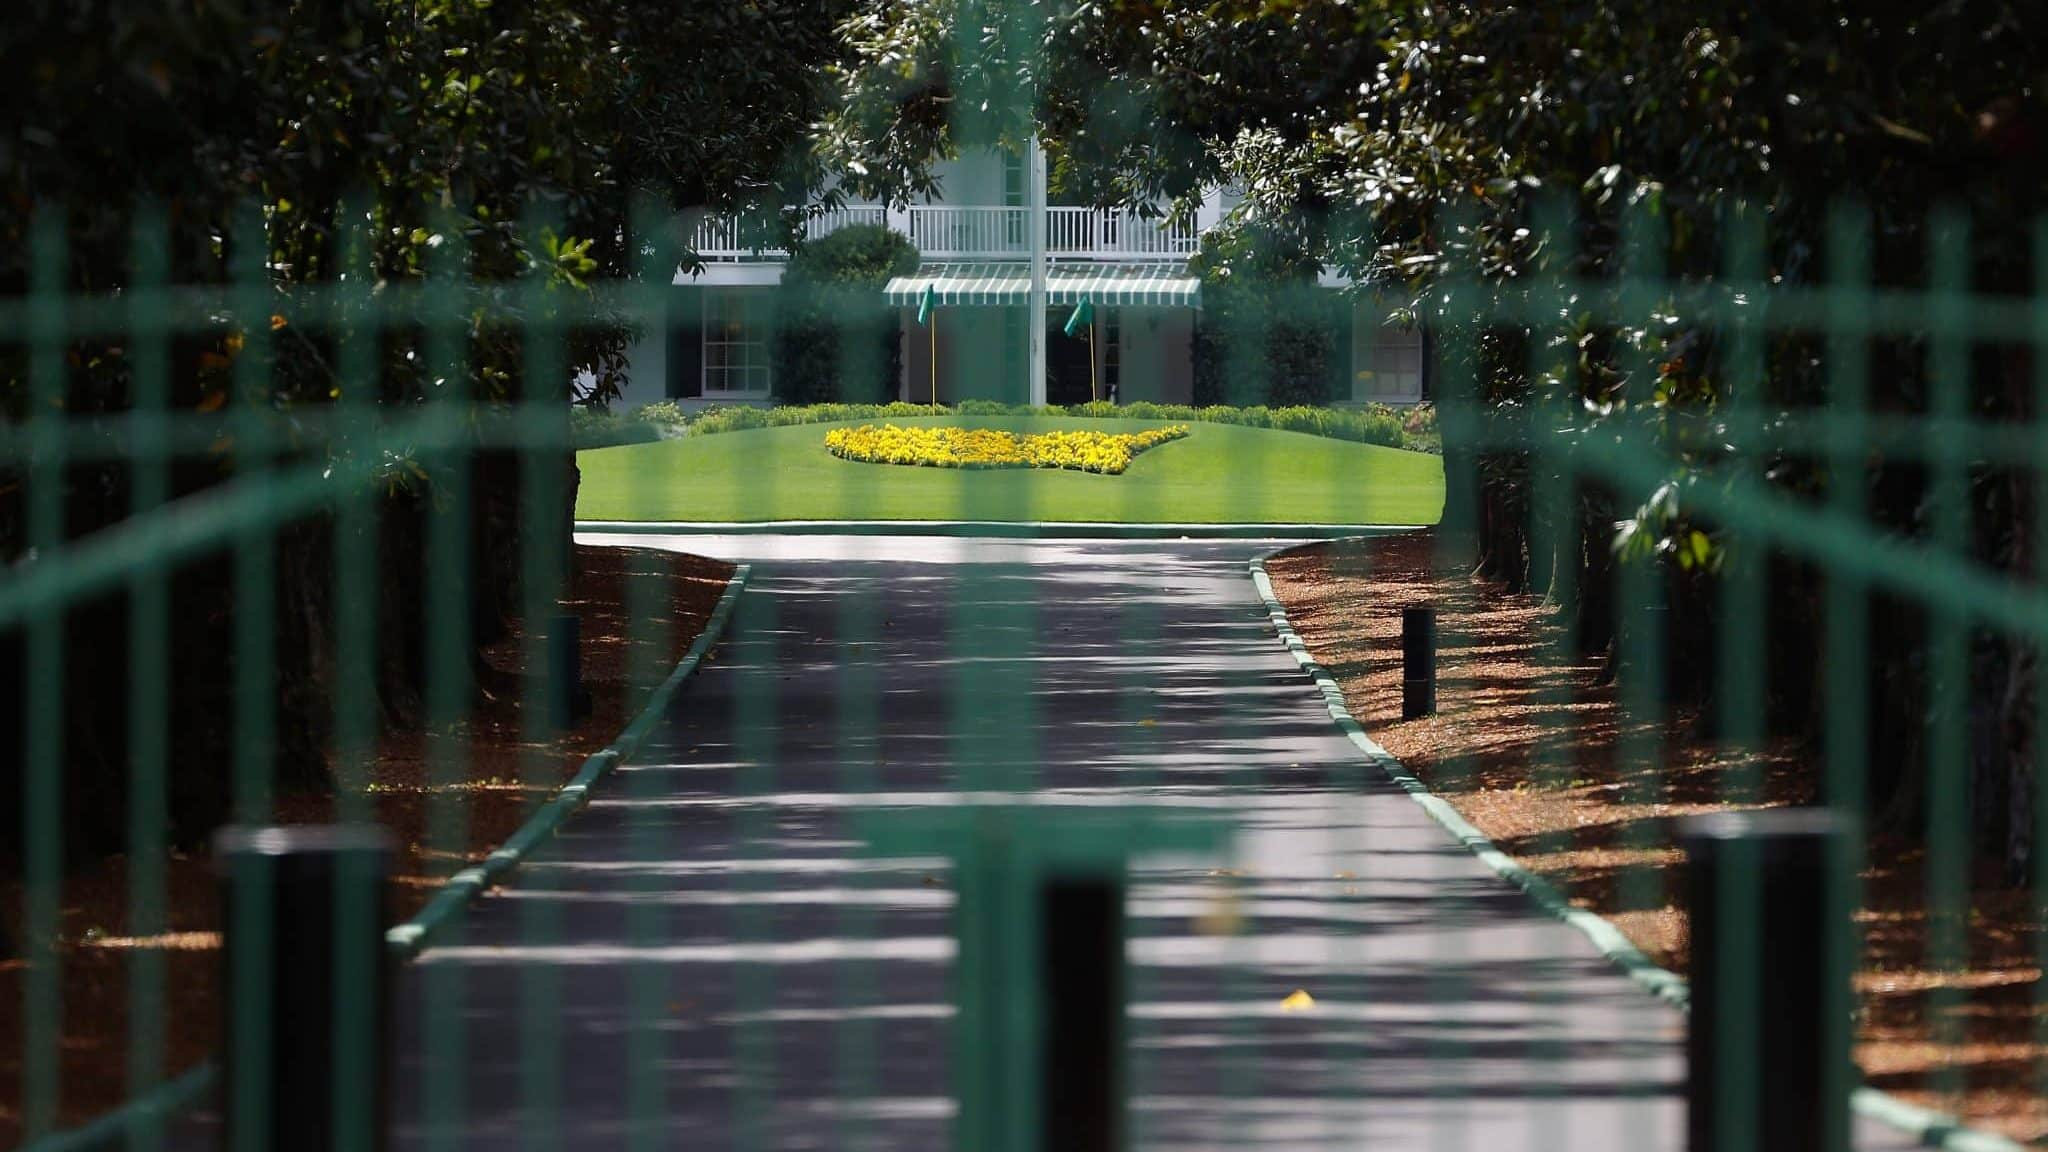 AUGUSTA, GEORGIA - MARCH 30: The gates are locked at the entrance of Magnolia Lane that leads to the clubhouse of Augusta National as the coronavirus pandemic causes closures of venues and nonessential businesses on March 30, 2020 in Augusta, Georgia. The Masters Tournament, the Augusta National Women's Amateur and the Drive, Chip and Putt National Finals has been postponed due to the coronavirus (COVID-19) outbreak.